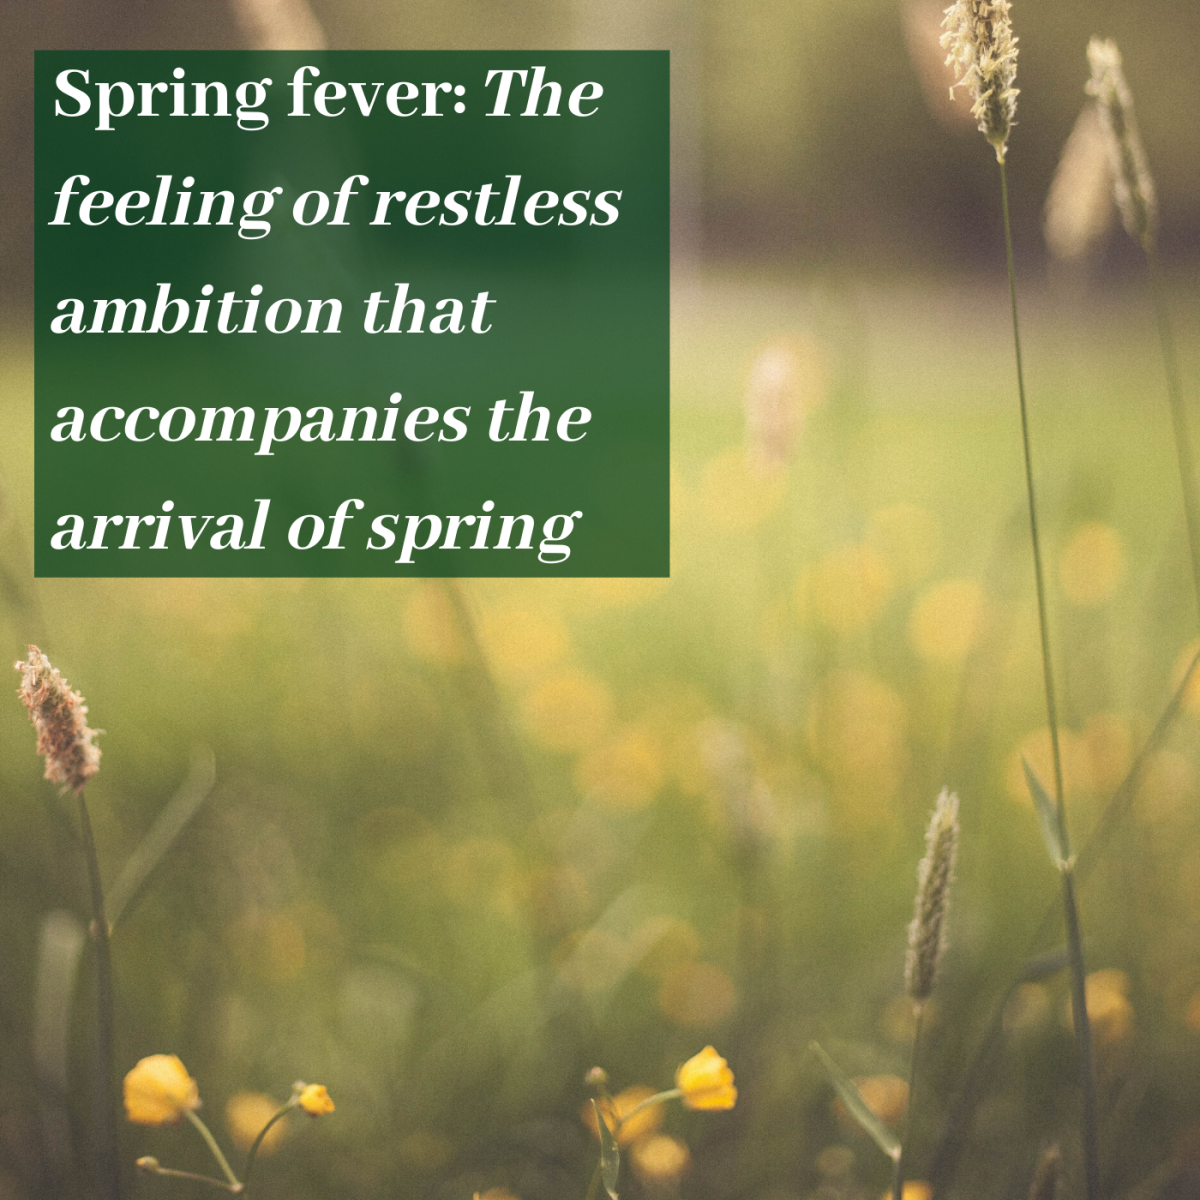 Spring fever: The feeling of restless ambition that accompanies the arrival of spring